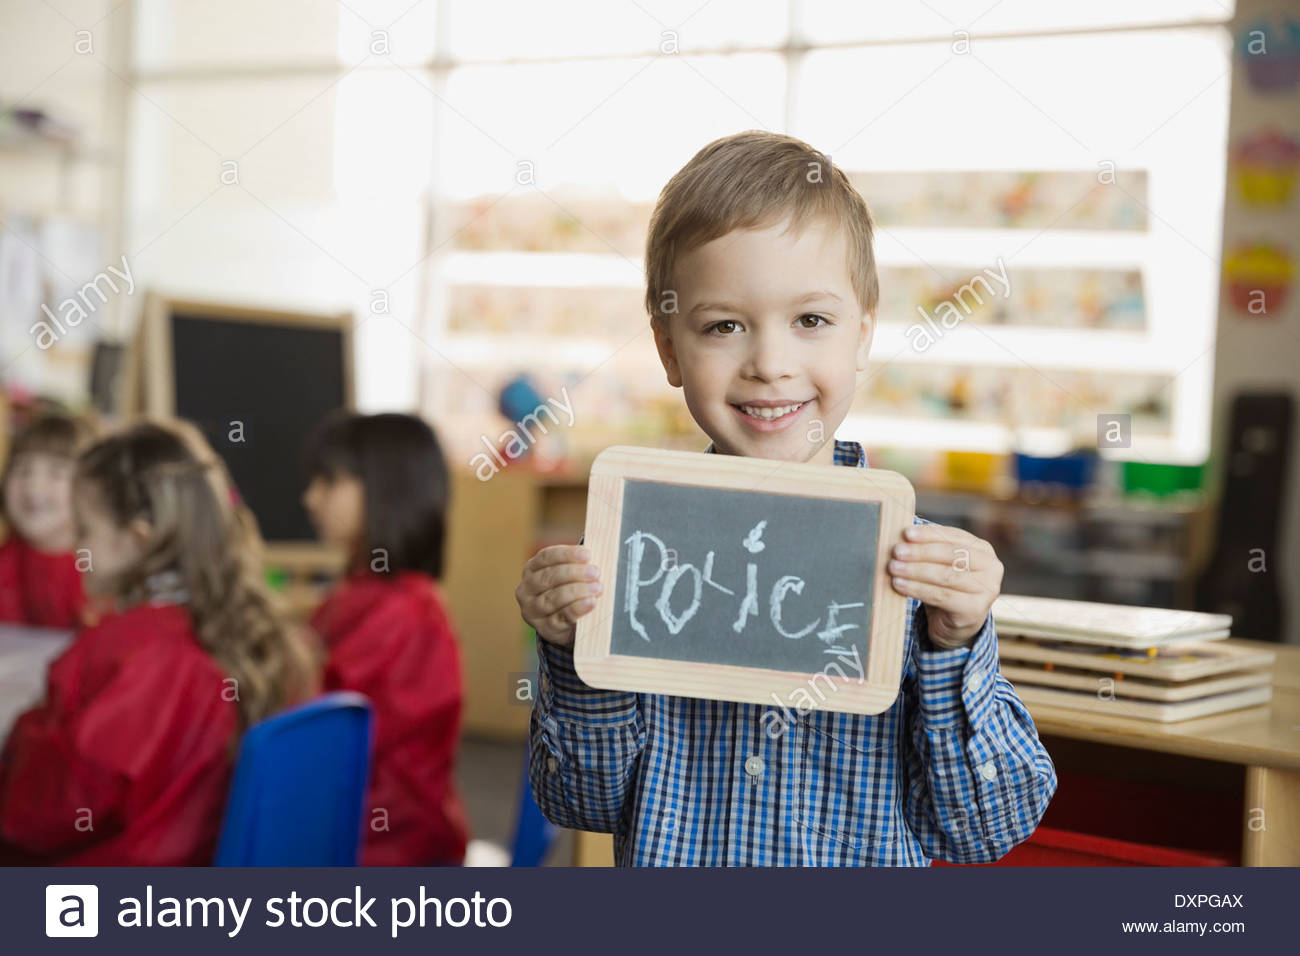 Elementary boy holding slate with 'Police' written on it - Stock Image